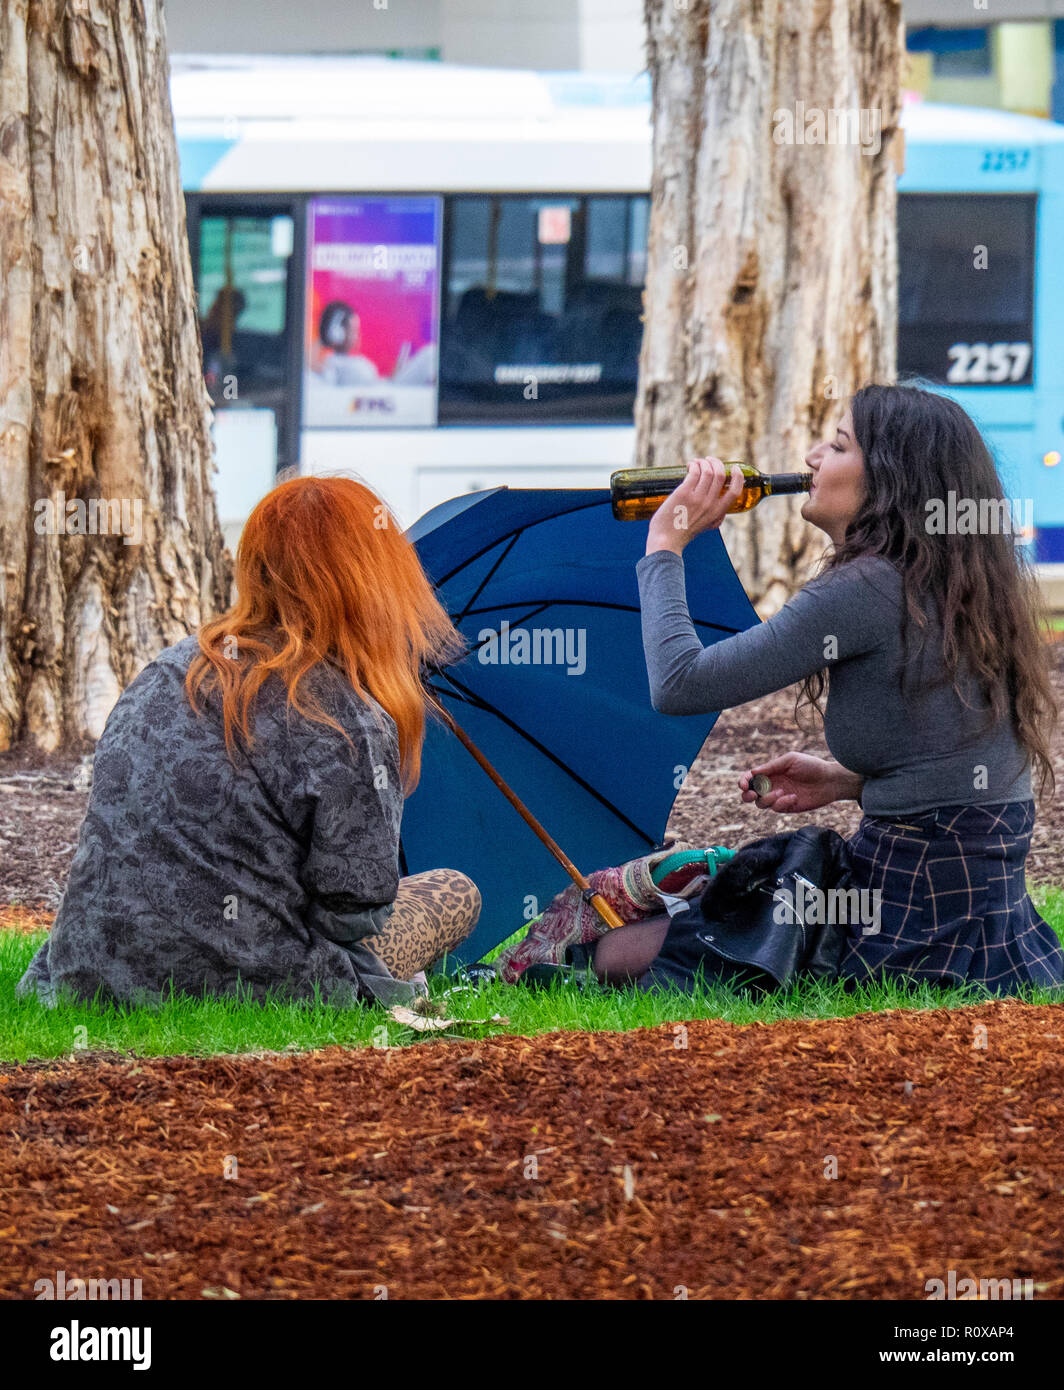 Two young female adults sitting and drinking from a beer bottle in Hyde Park Sydney NSW Australia. - Stock Image